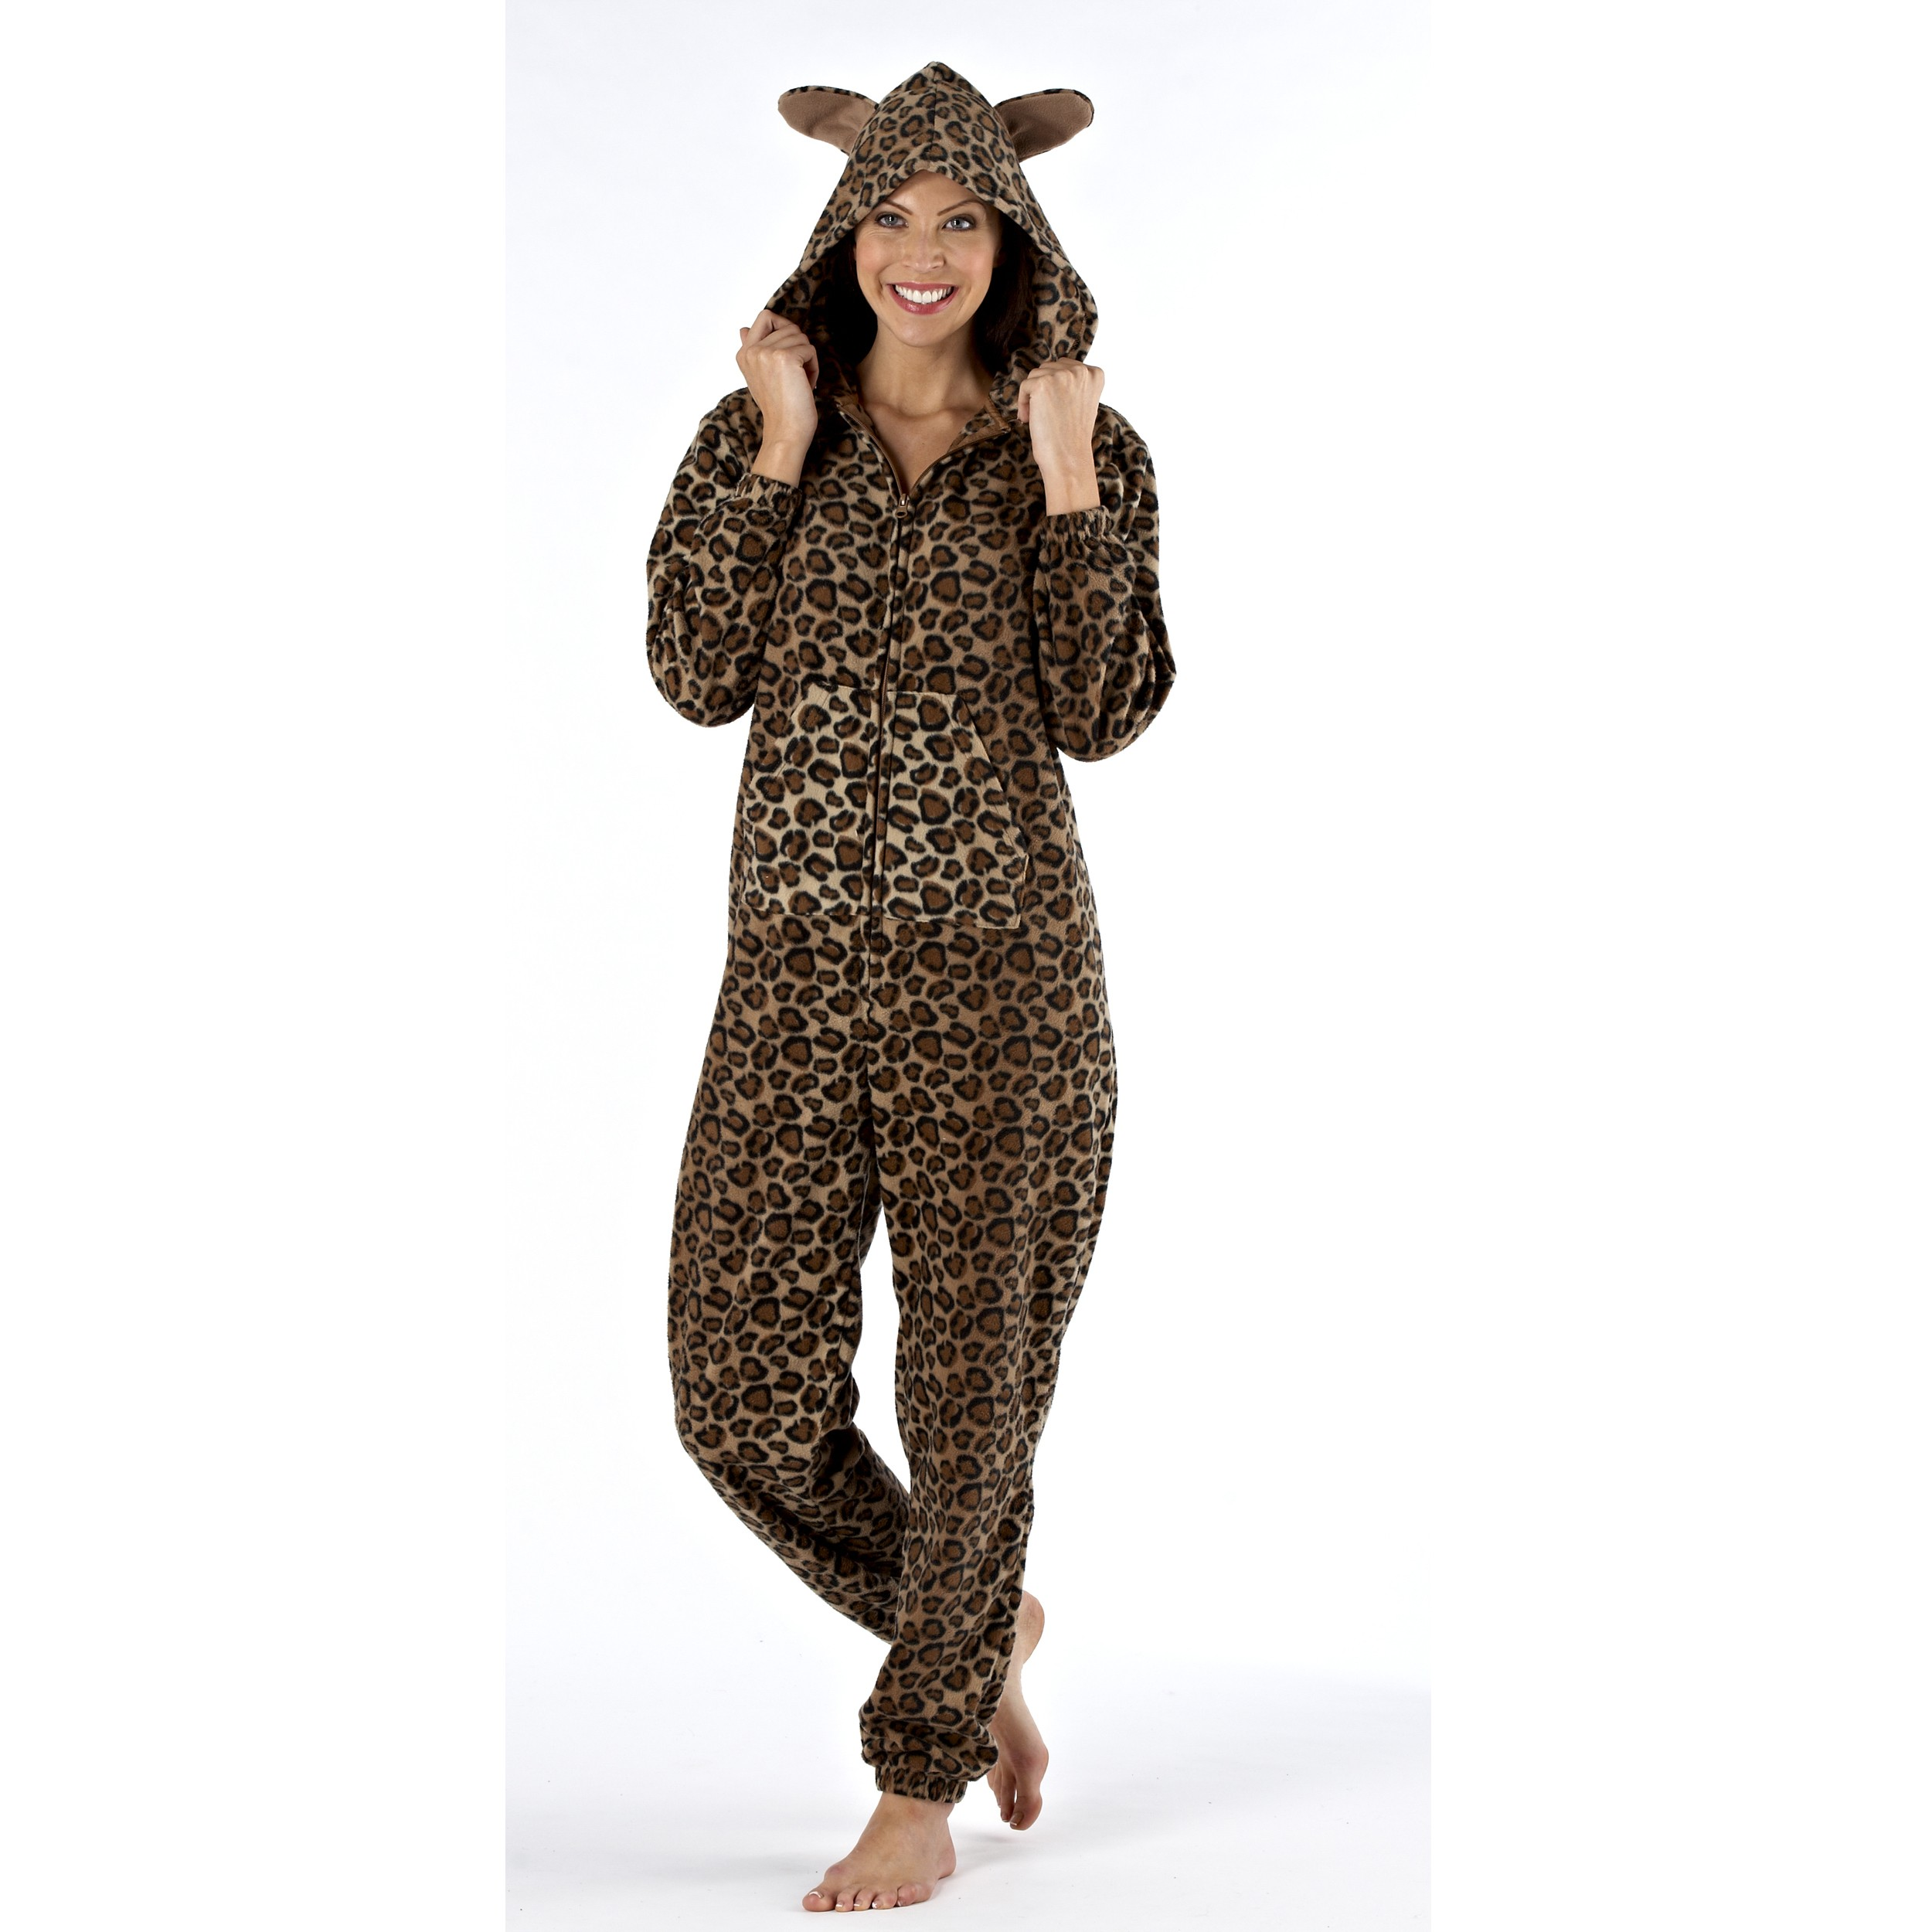 Selena Secrets Animal Print Fleece Hooded Onesie - Brown